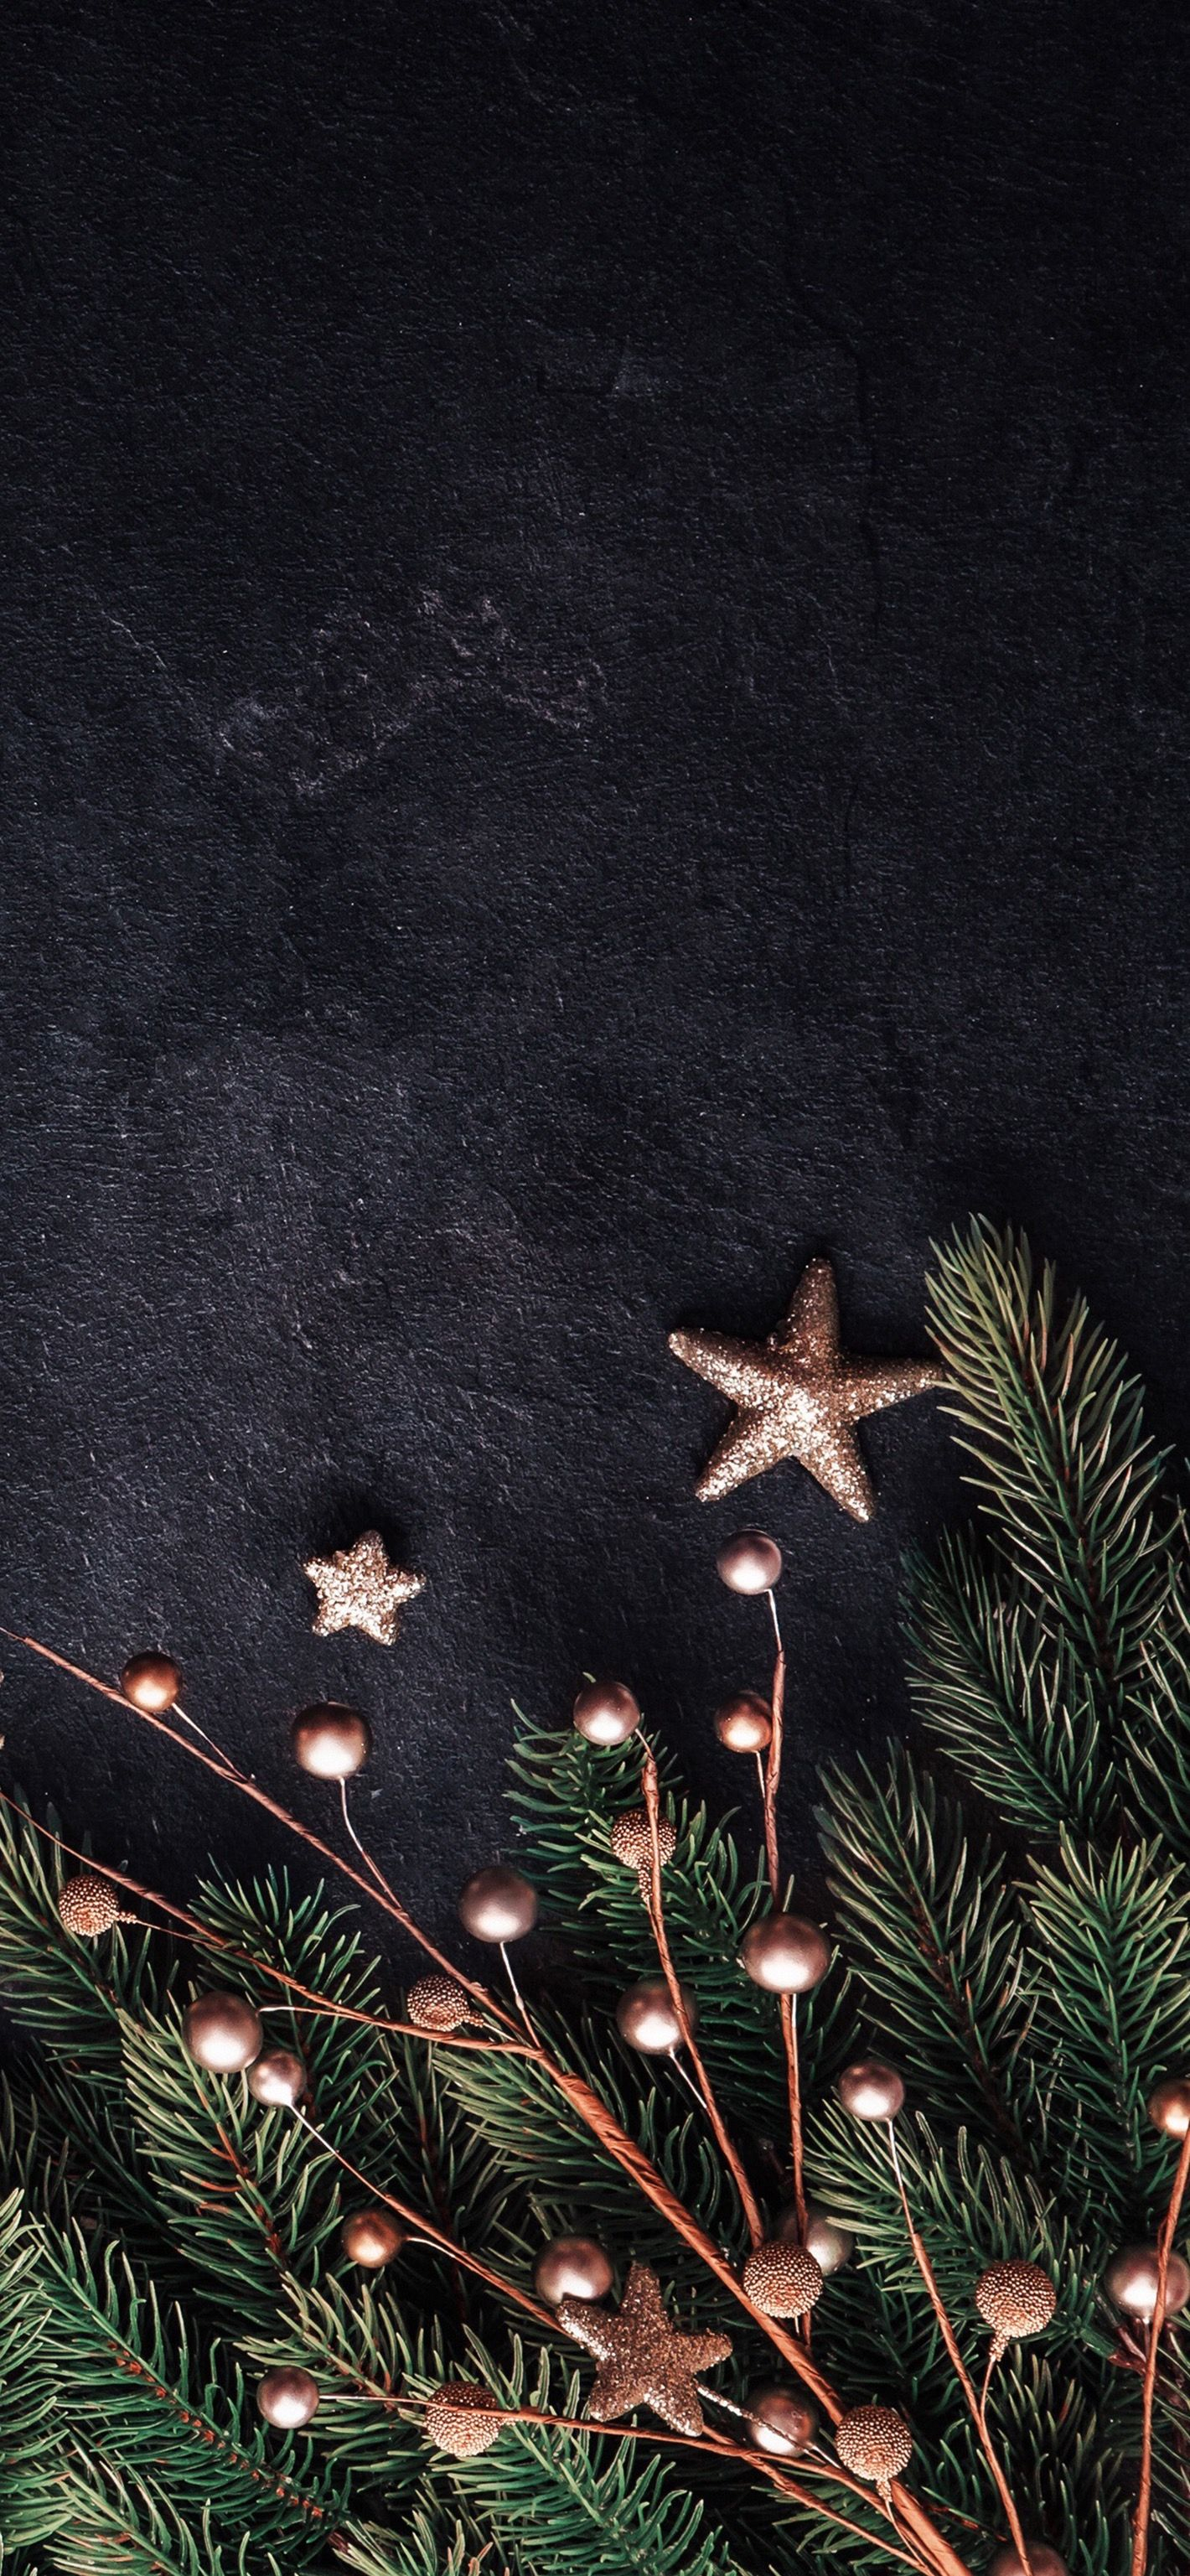 Wallpapers For Iphone 12 Pro And Iphone 12 Pro Max Christmas Phone Wallpaper Pretty Wallpapers Wallpaper